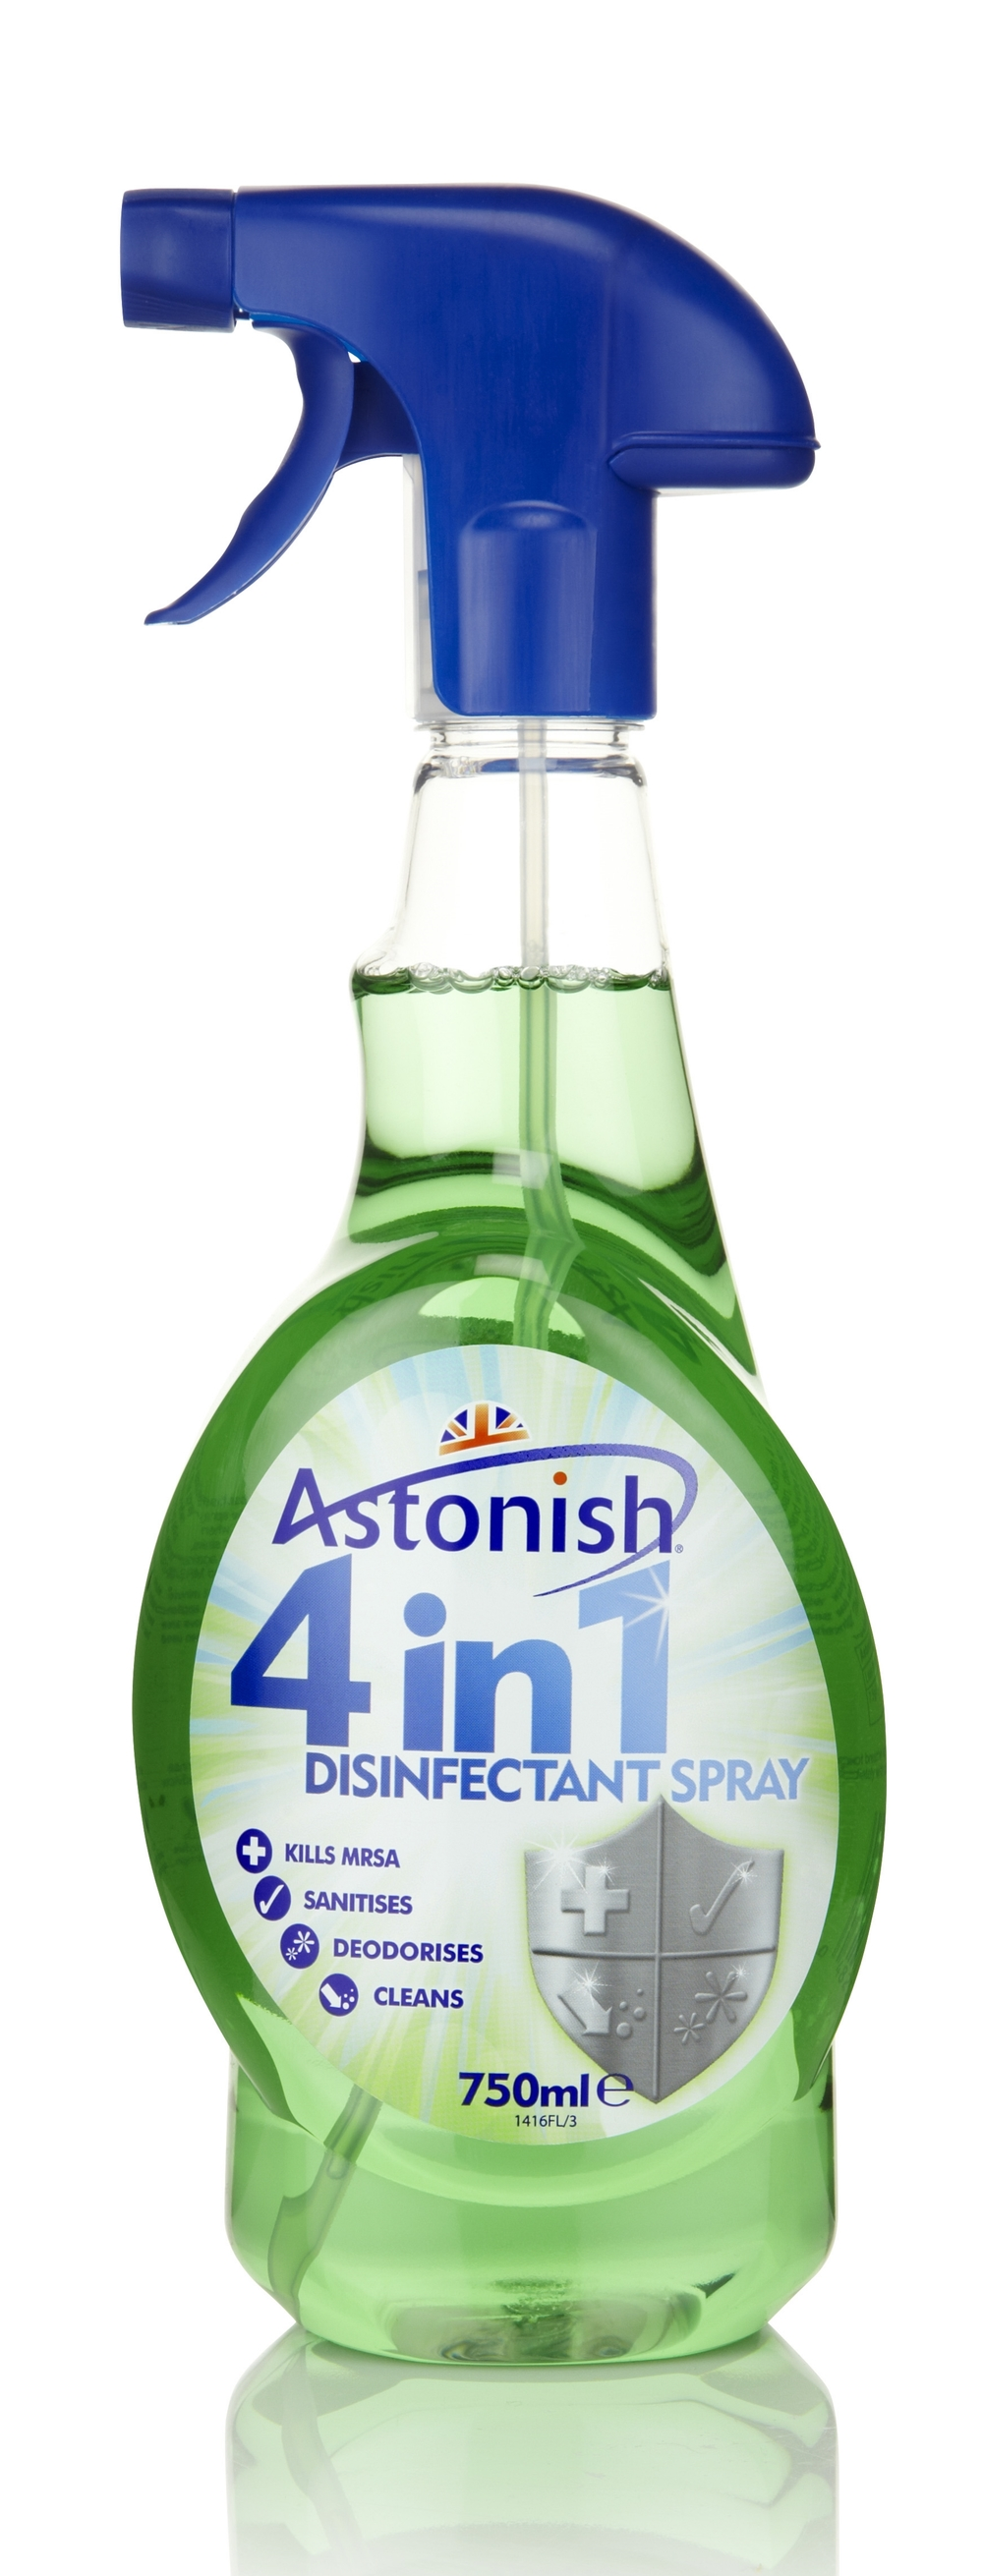 Astonish 4 in 1 Disinfectant Spray 750ml.jpg